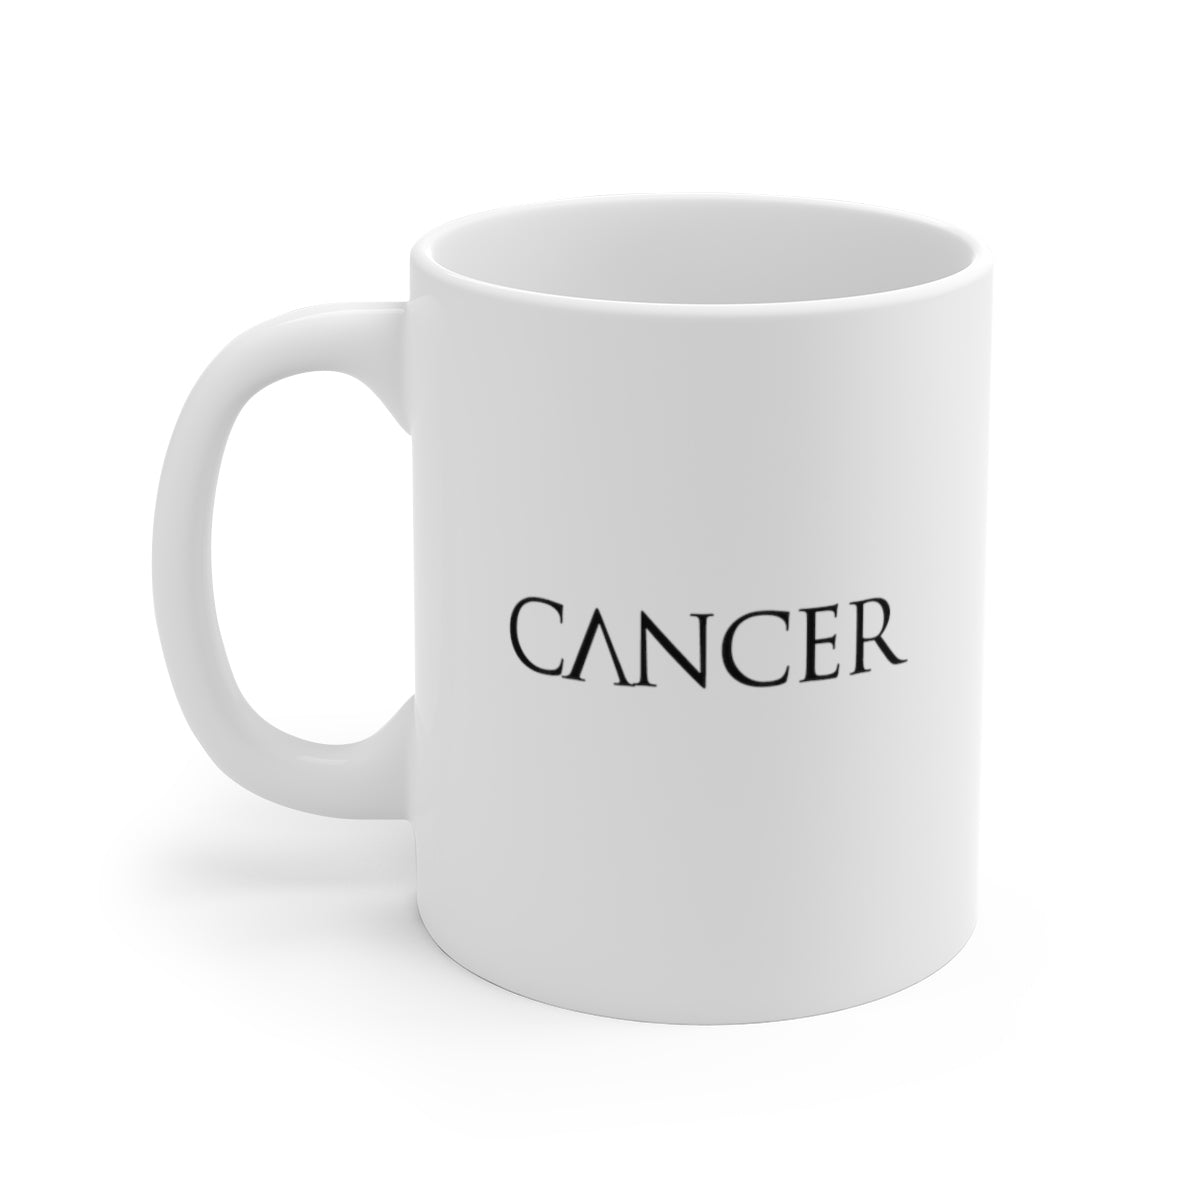 Cancer White Ceramic Mug